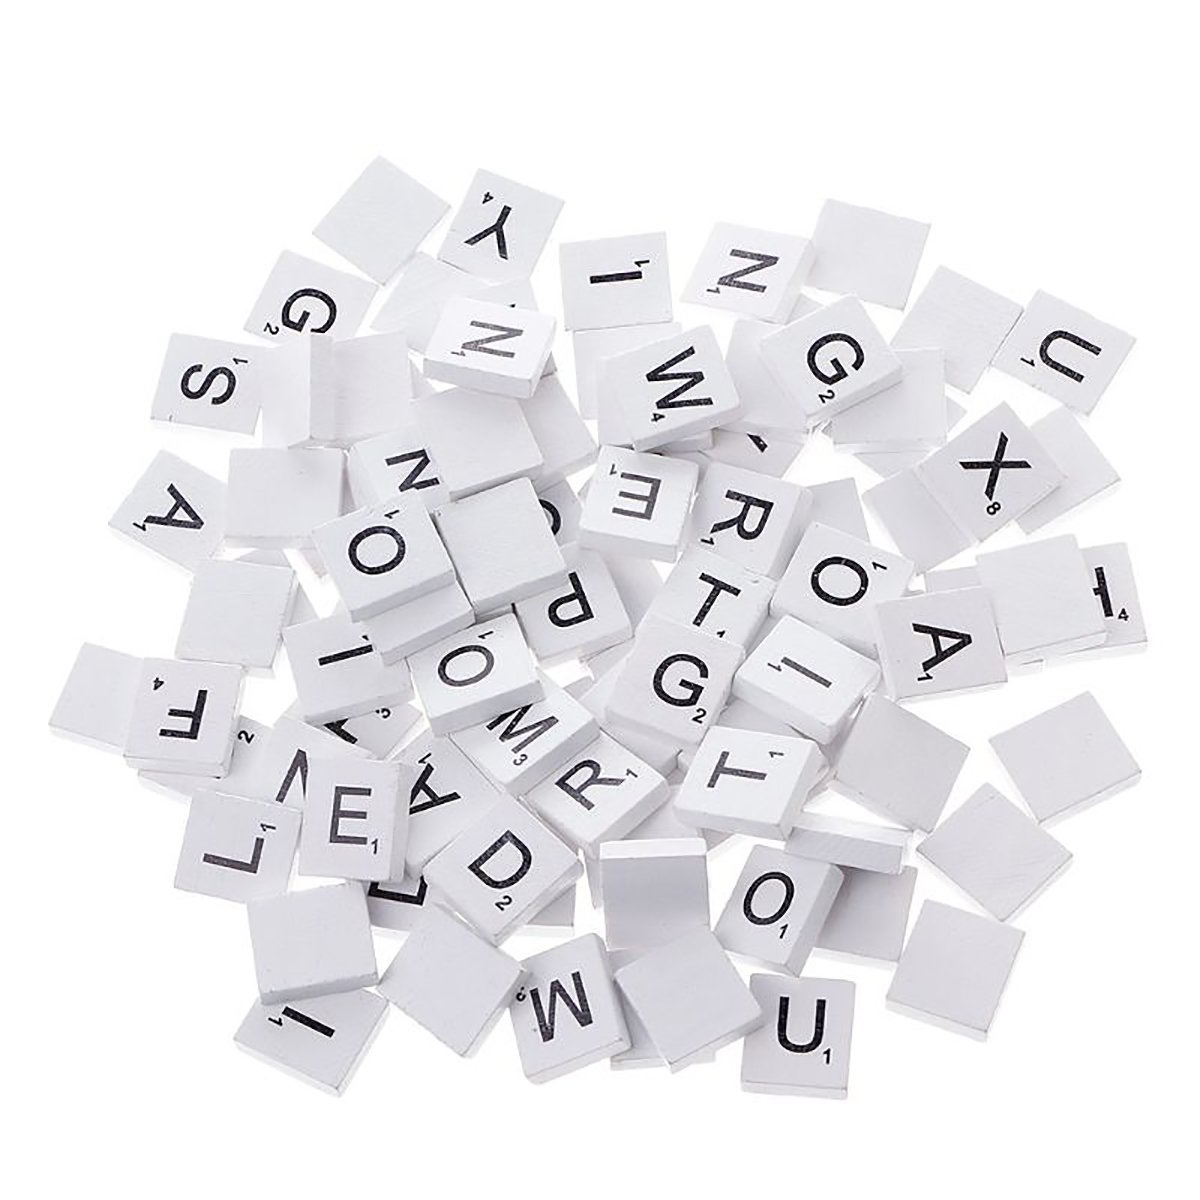 Letters Number or Blank 20mm size tiles in MDF similar to Scrabble © style